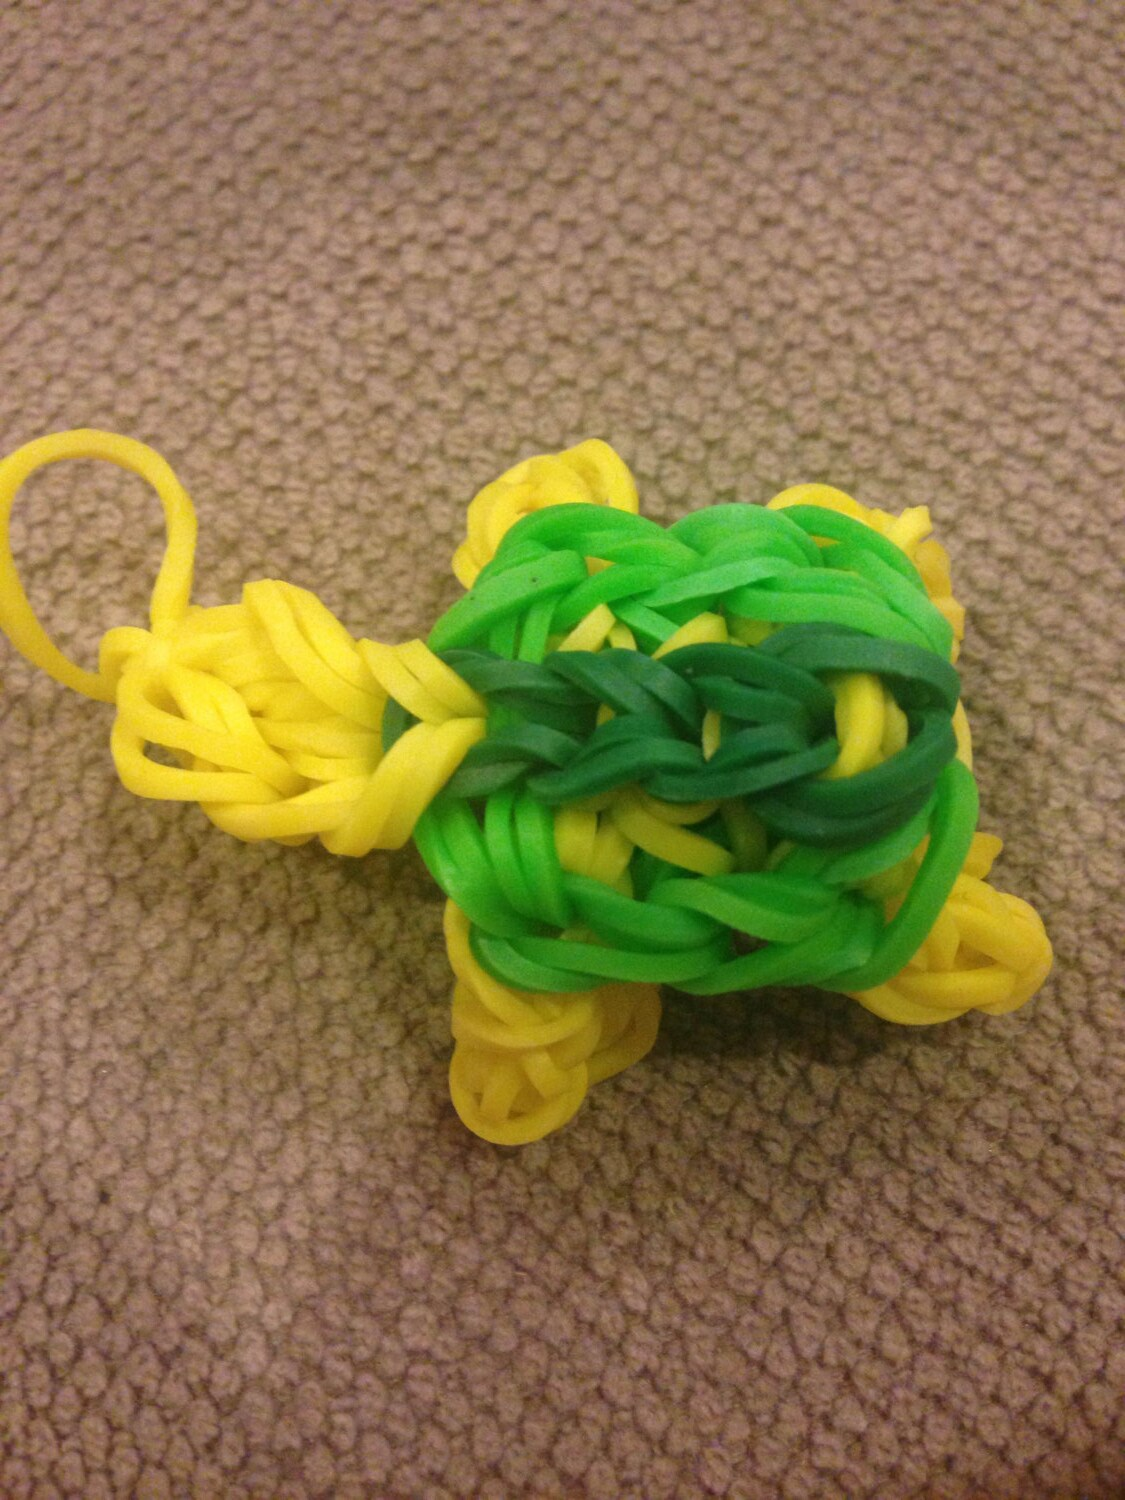 how to make a rubber band turtle